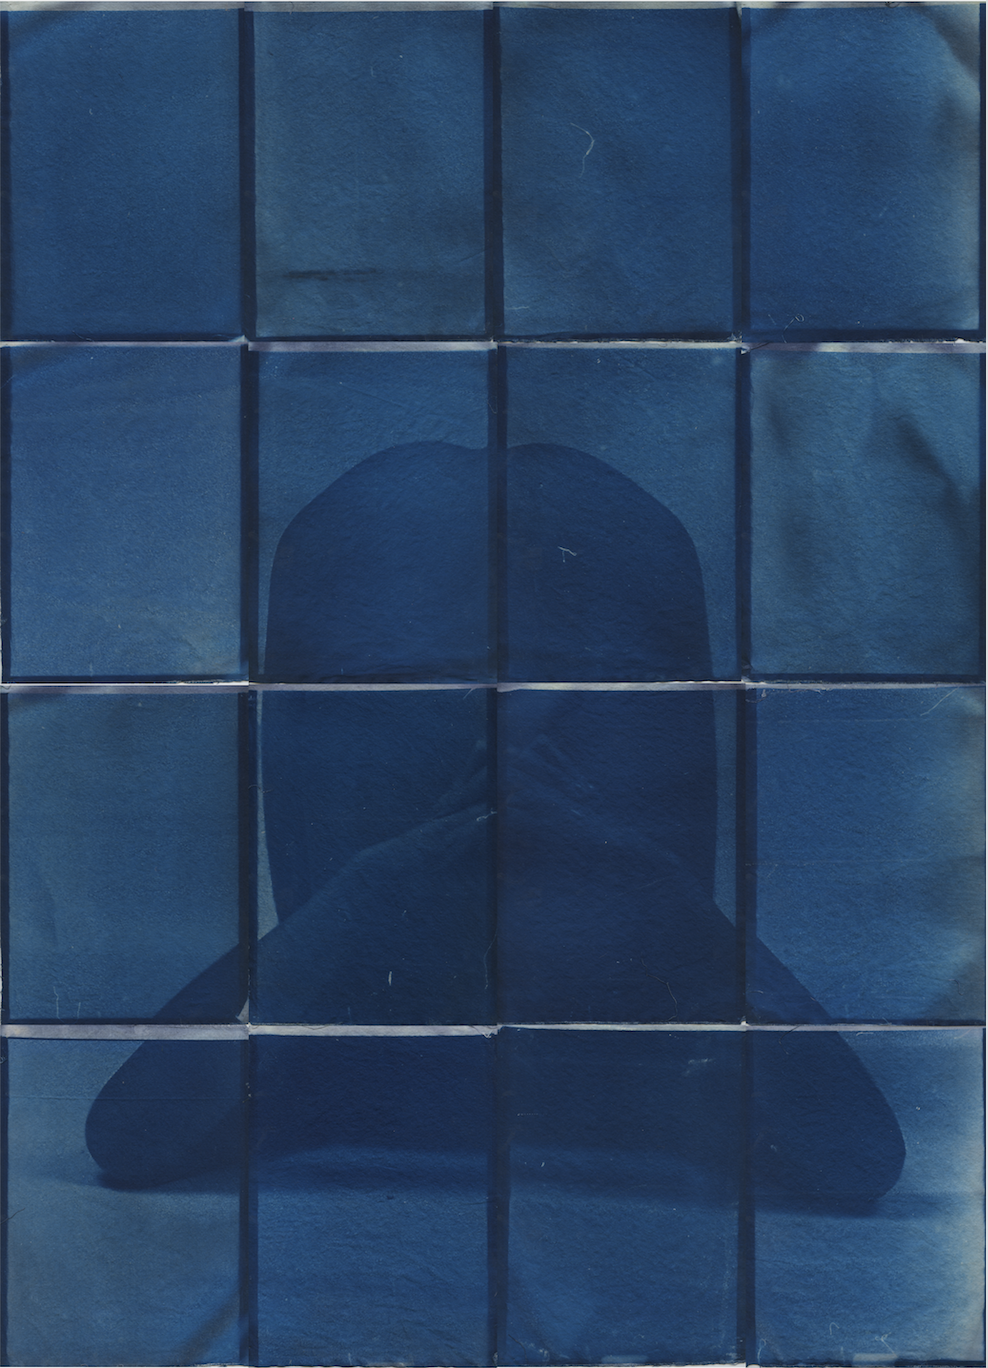 Stretch, 2017.    Collection of 16 A4 cyanotype prints forming an A0 (841 x 1189 mm) installation.